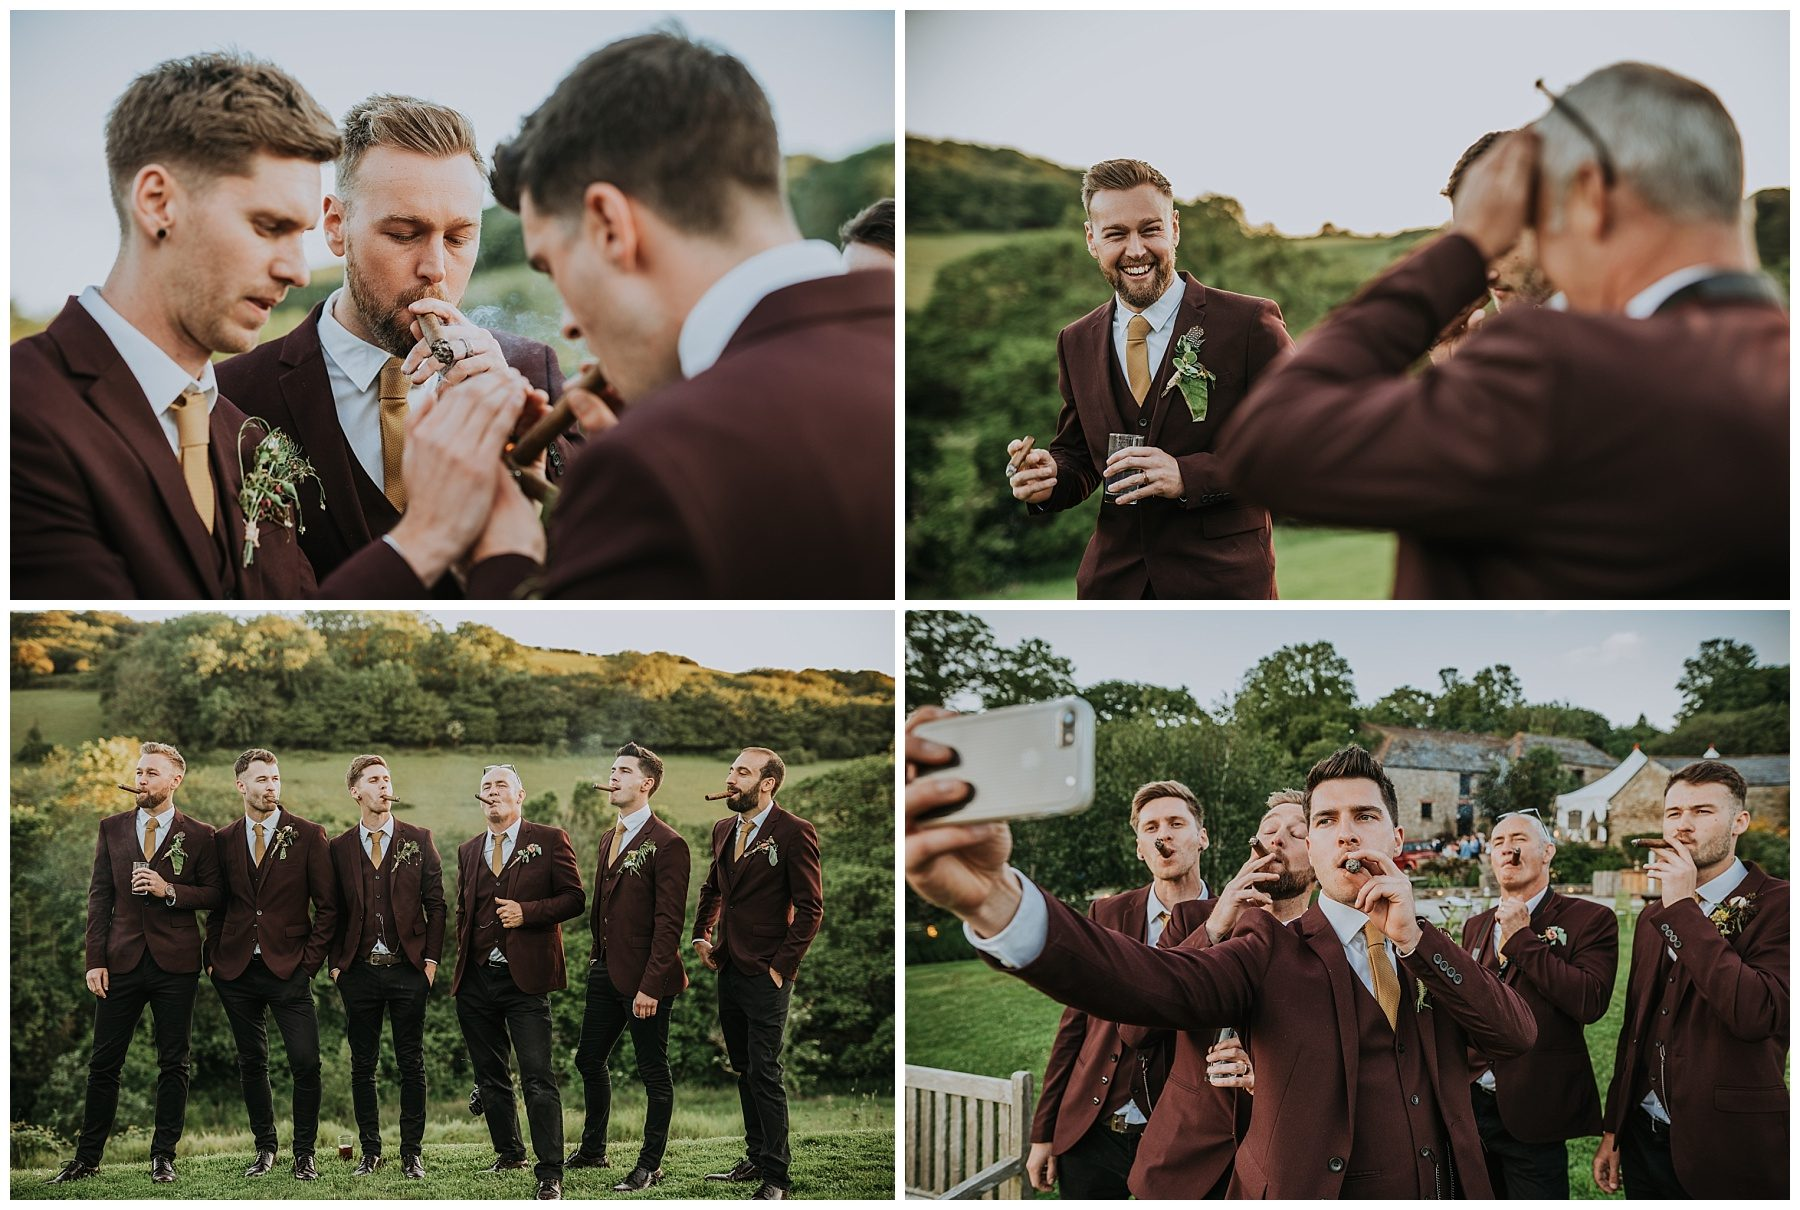 Pengenna manor cornwall wedding venue groom cigar photographer